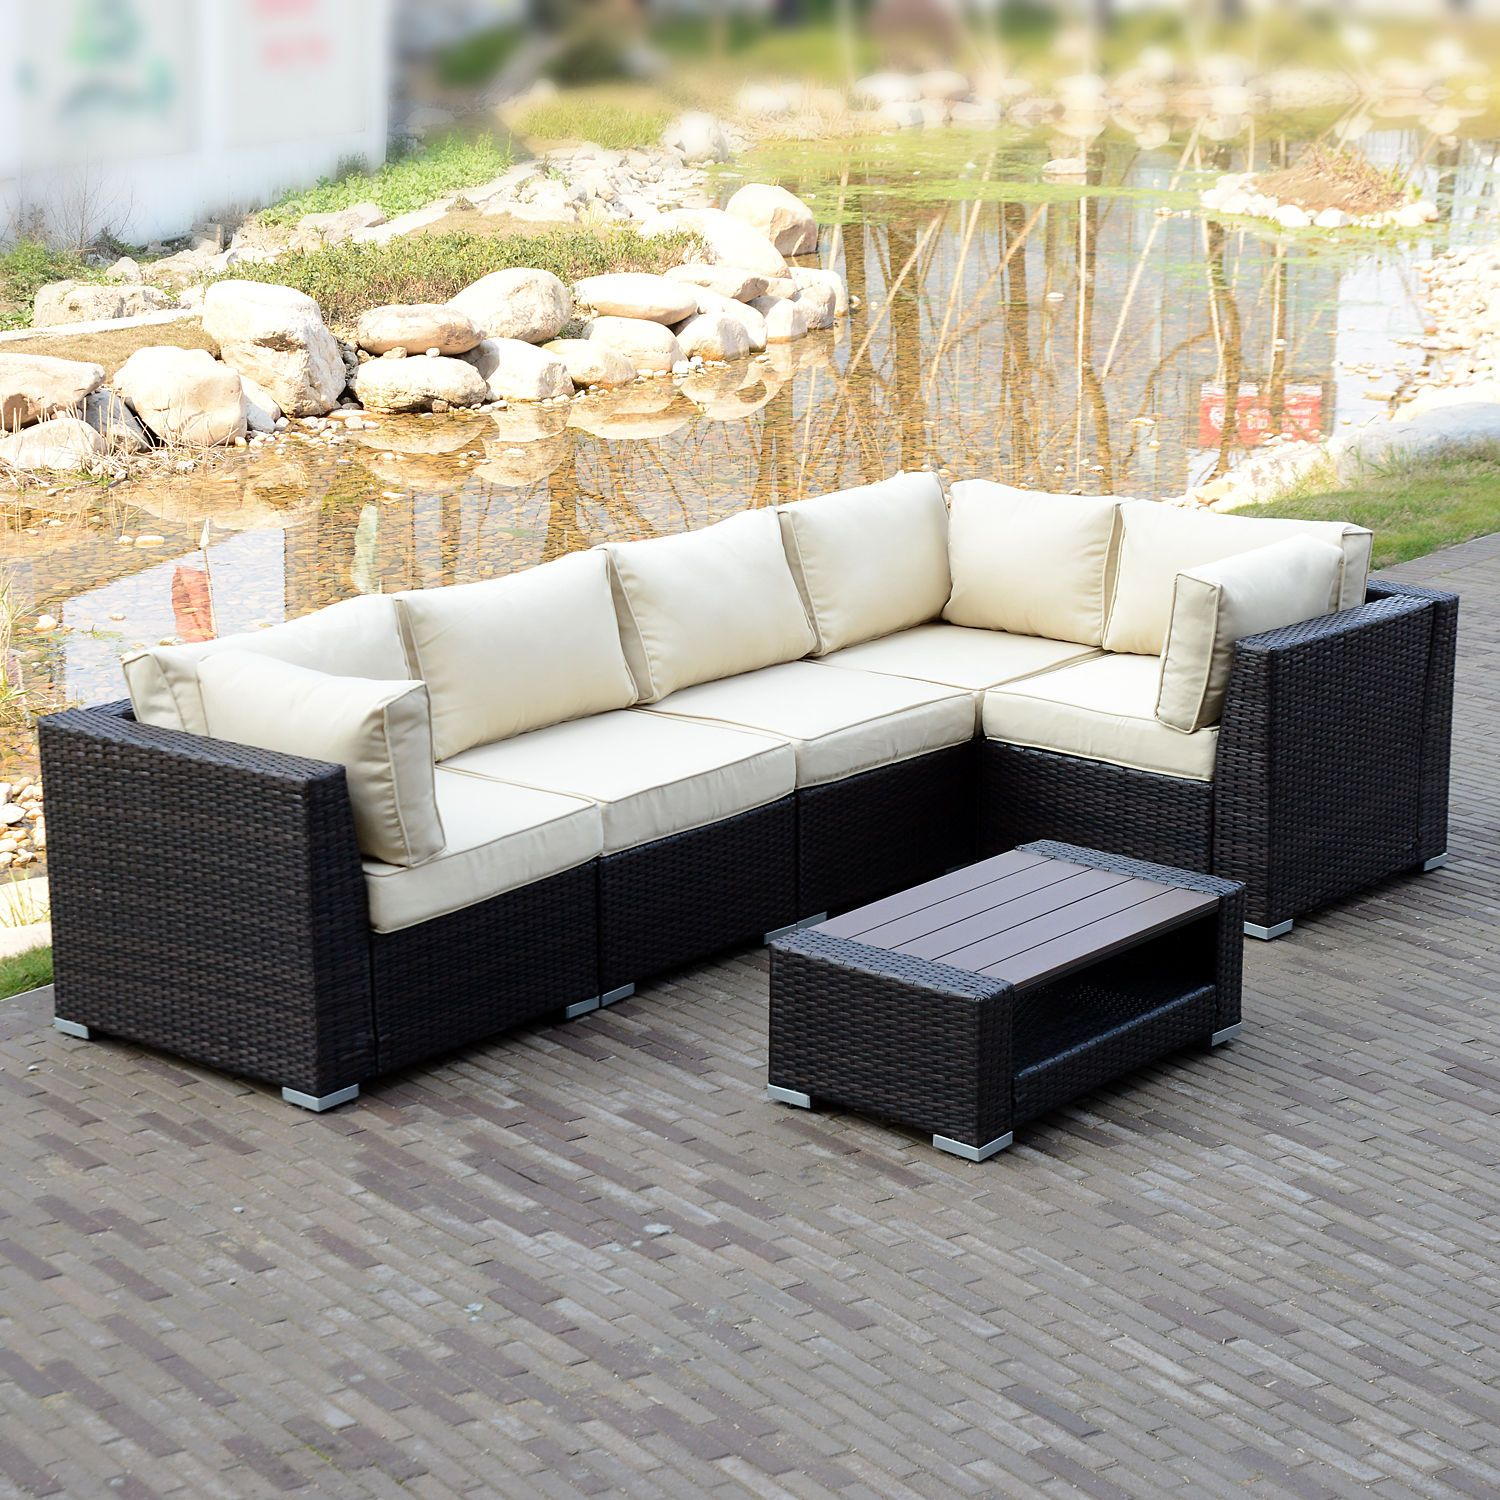 6 PCS Rattan Furniture Set Outdoor Patio Garden Sectional PE Wicker Couch  Sofa